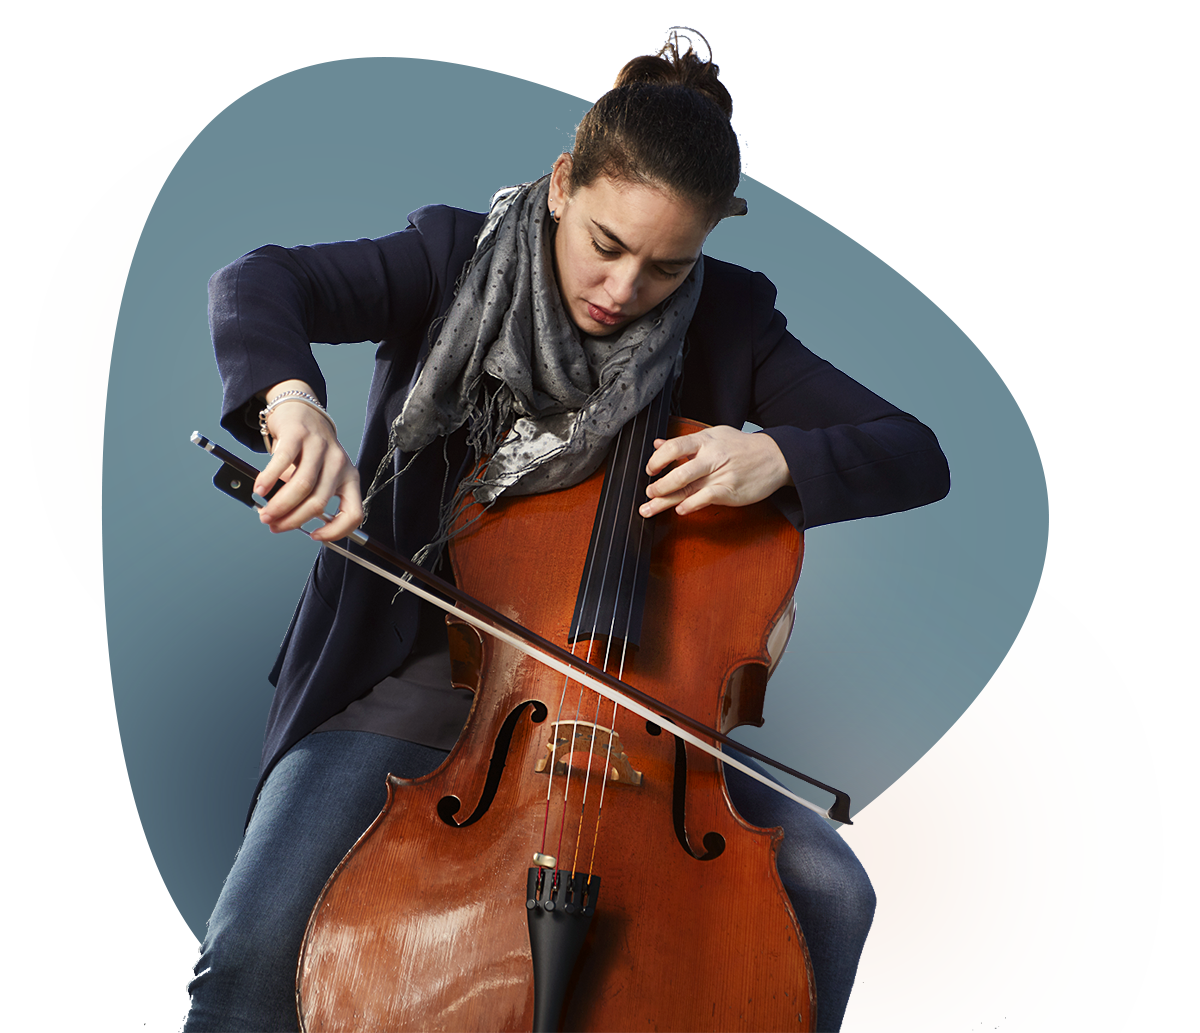 Classicalia classical music competition 2021 open to all ages